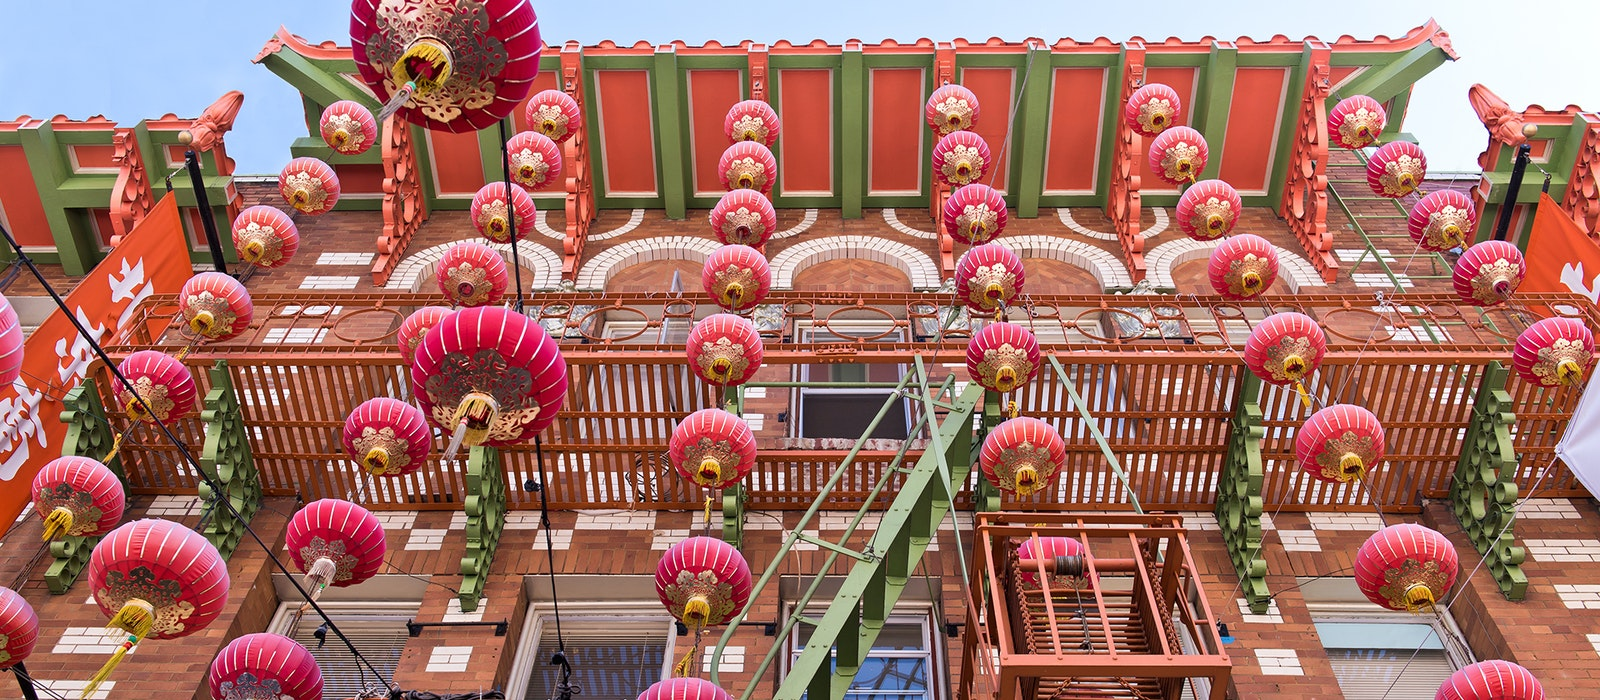 San Francisco's month-long Chinese New Year celebration culminates with a parade each winter.